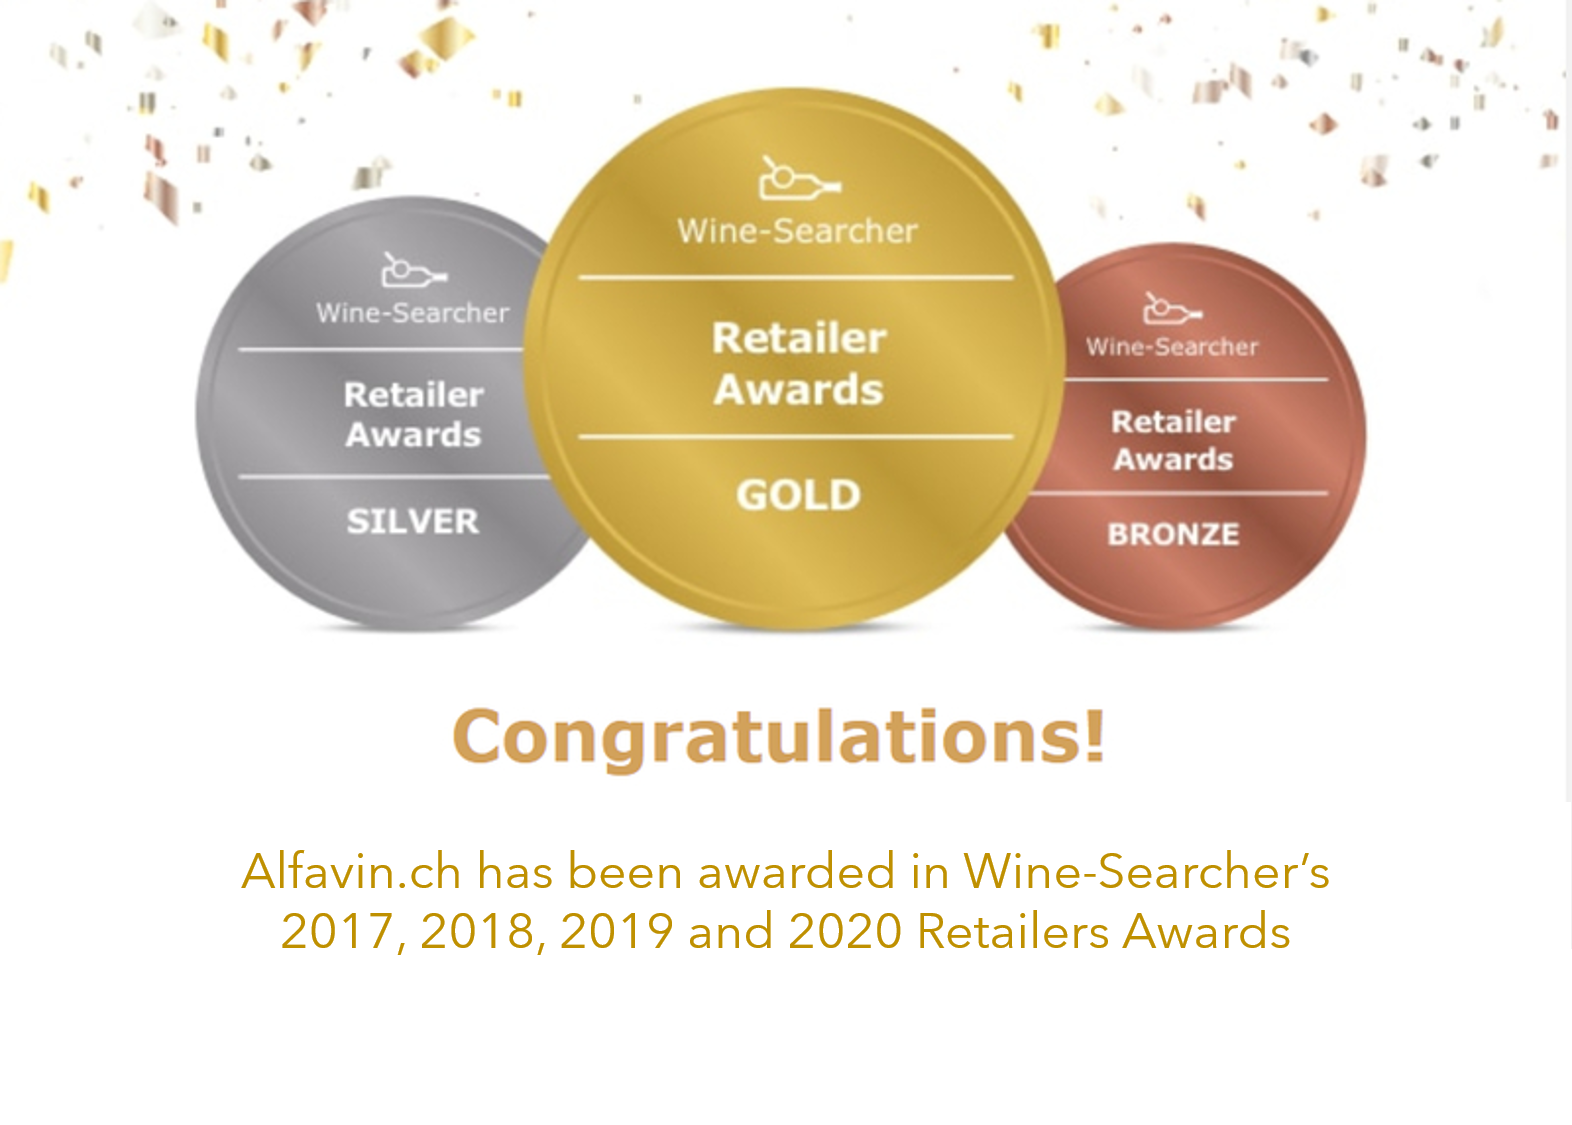 ALFAVIN.CH WINE SEARCHER'S GOLD MEDAL